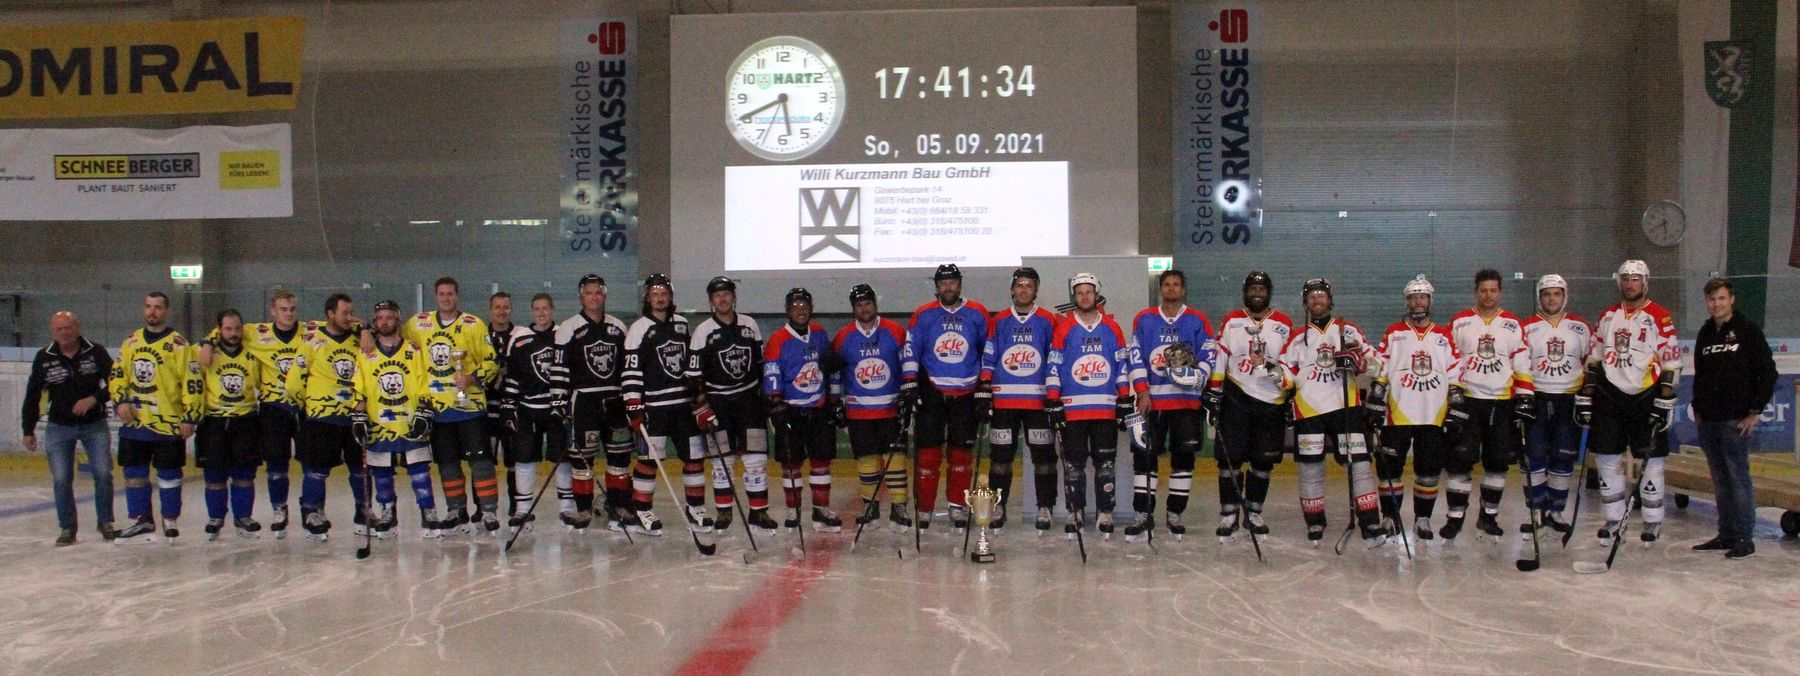 You are currently viewing Bericht NHL CUP 2021